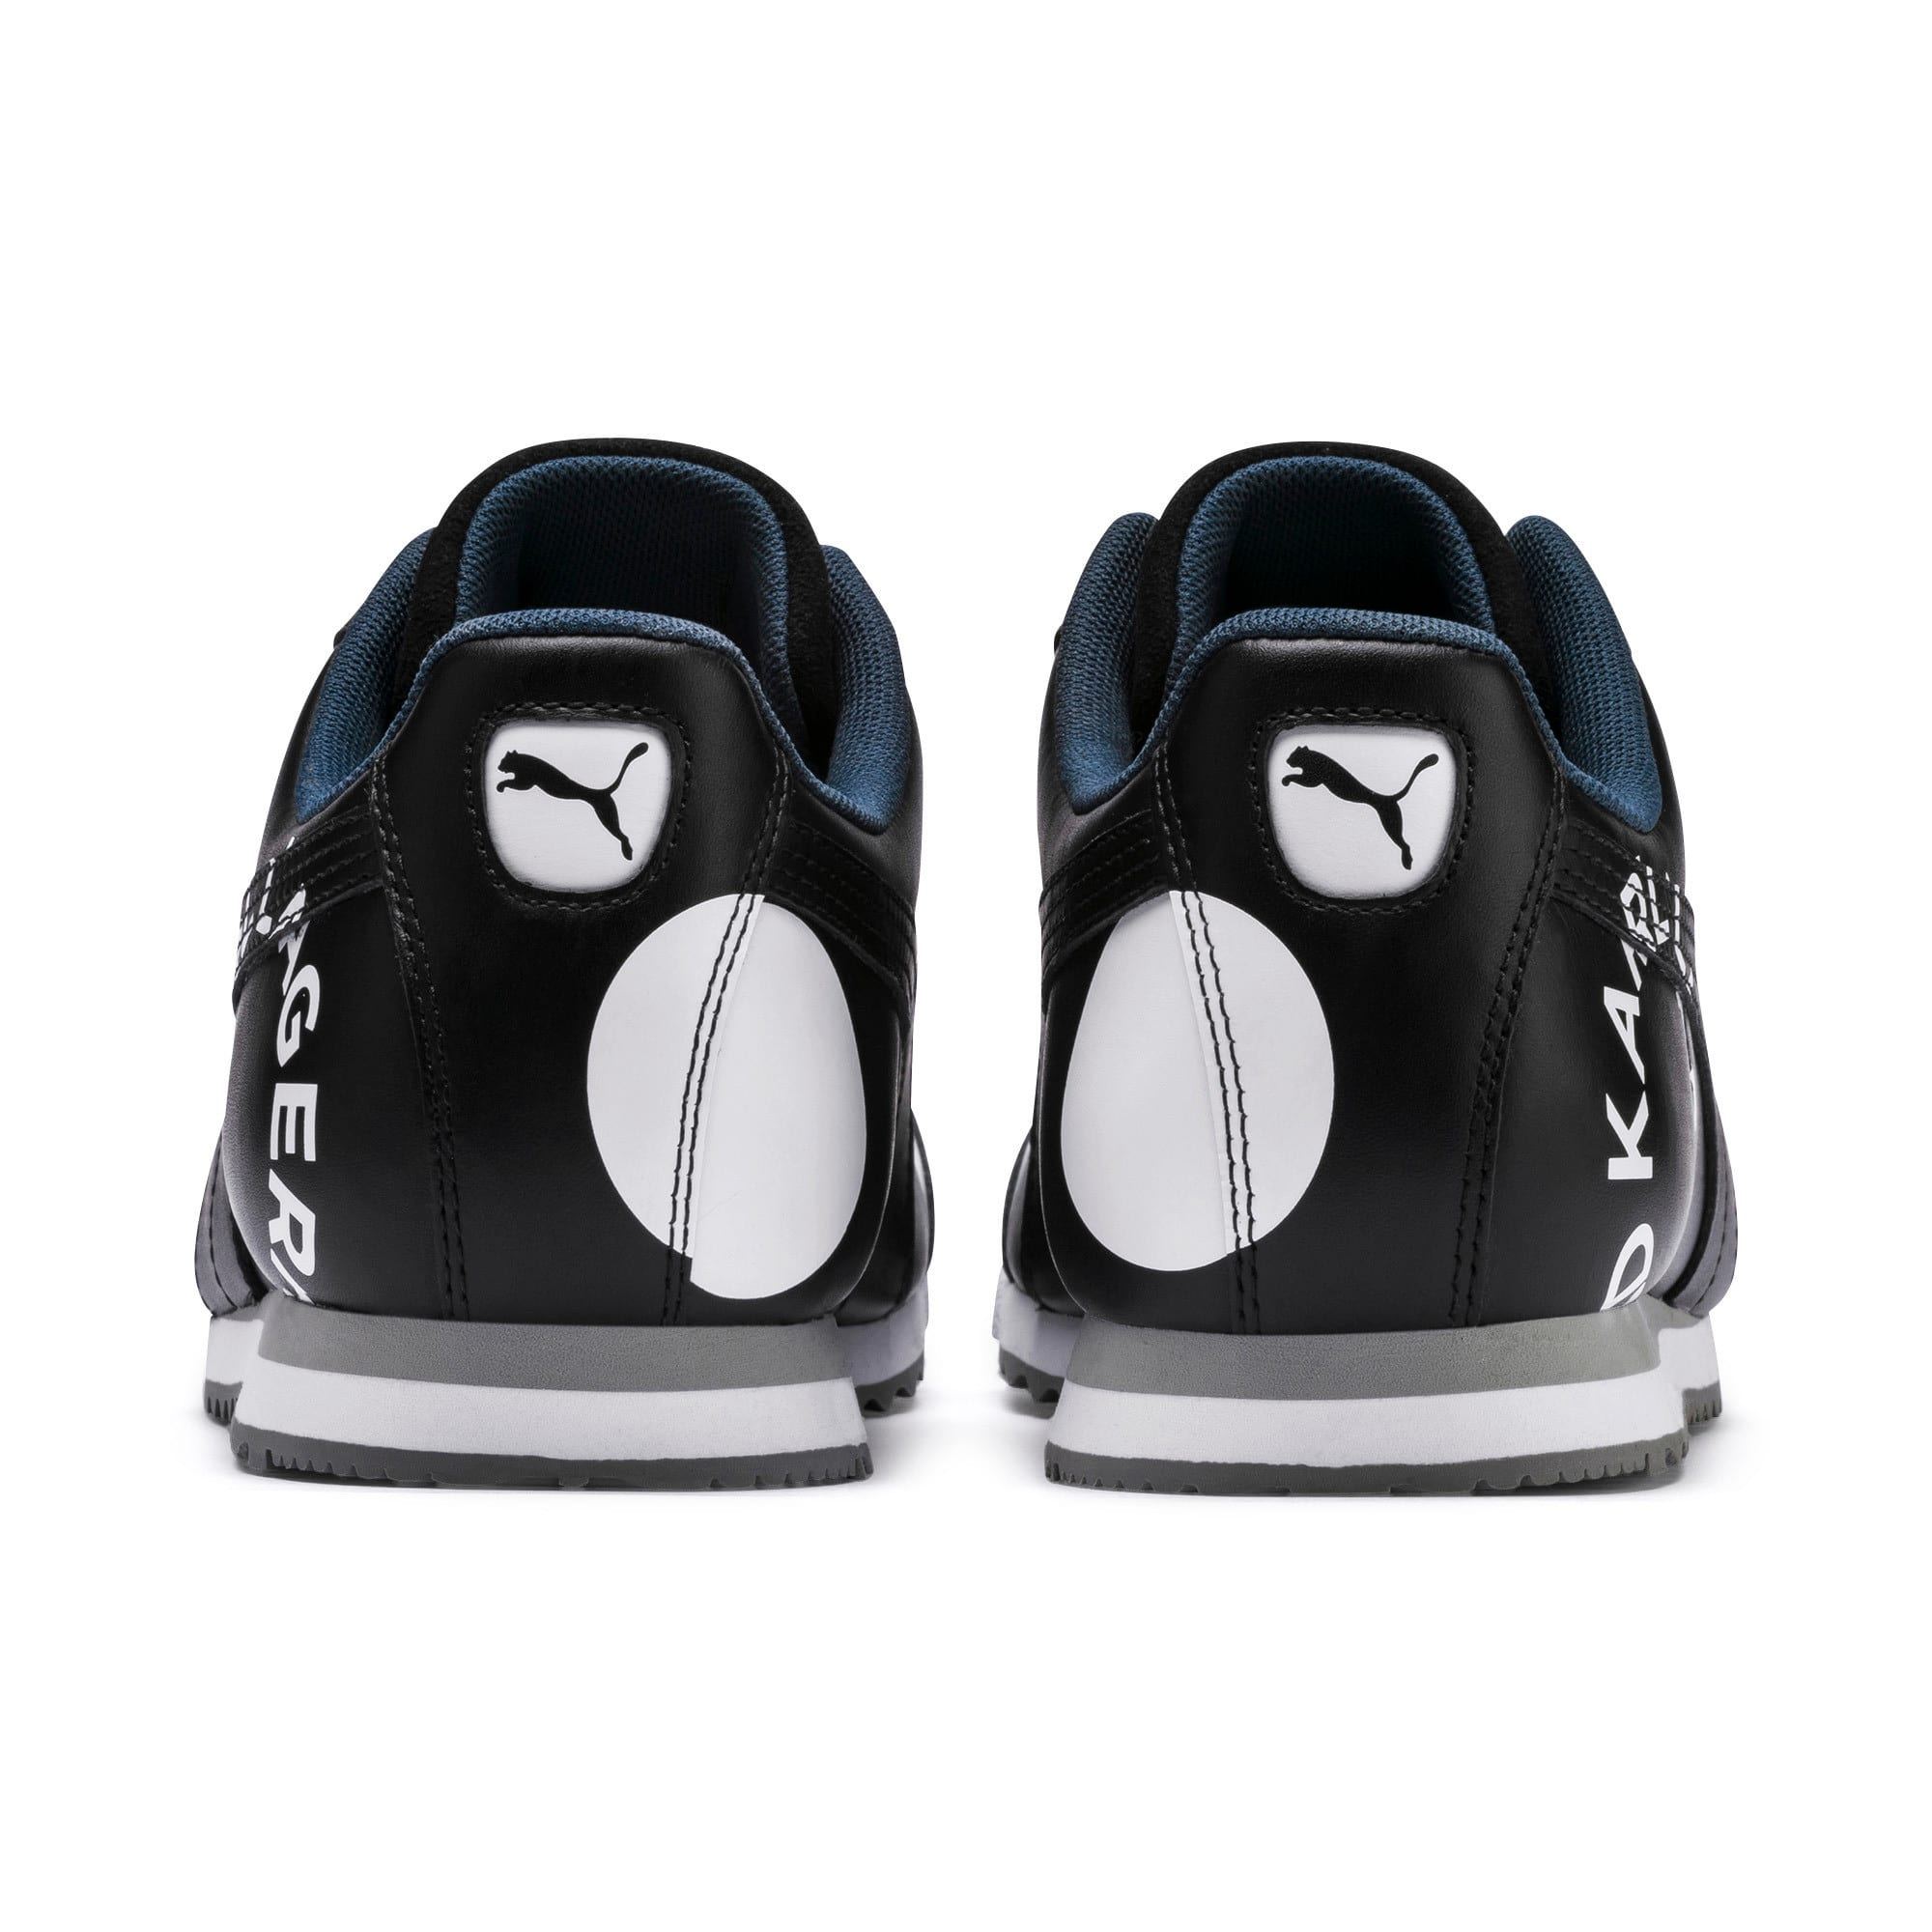 Thumbnail 3 of Zapatillas Roma PUMA x KARL LAGERFELD, Puma Black, medium